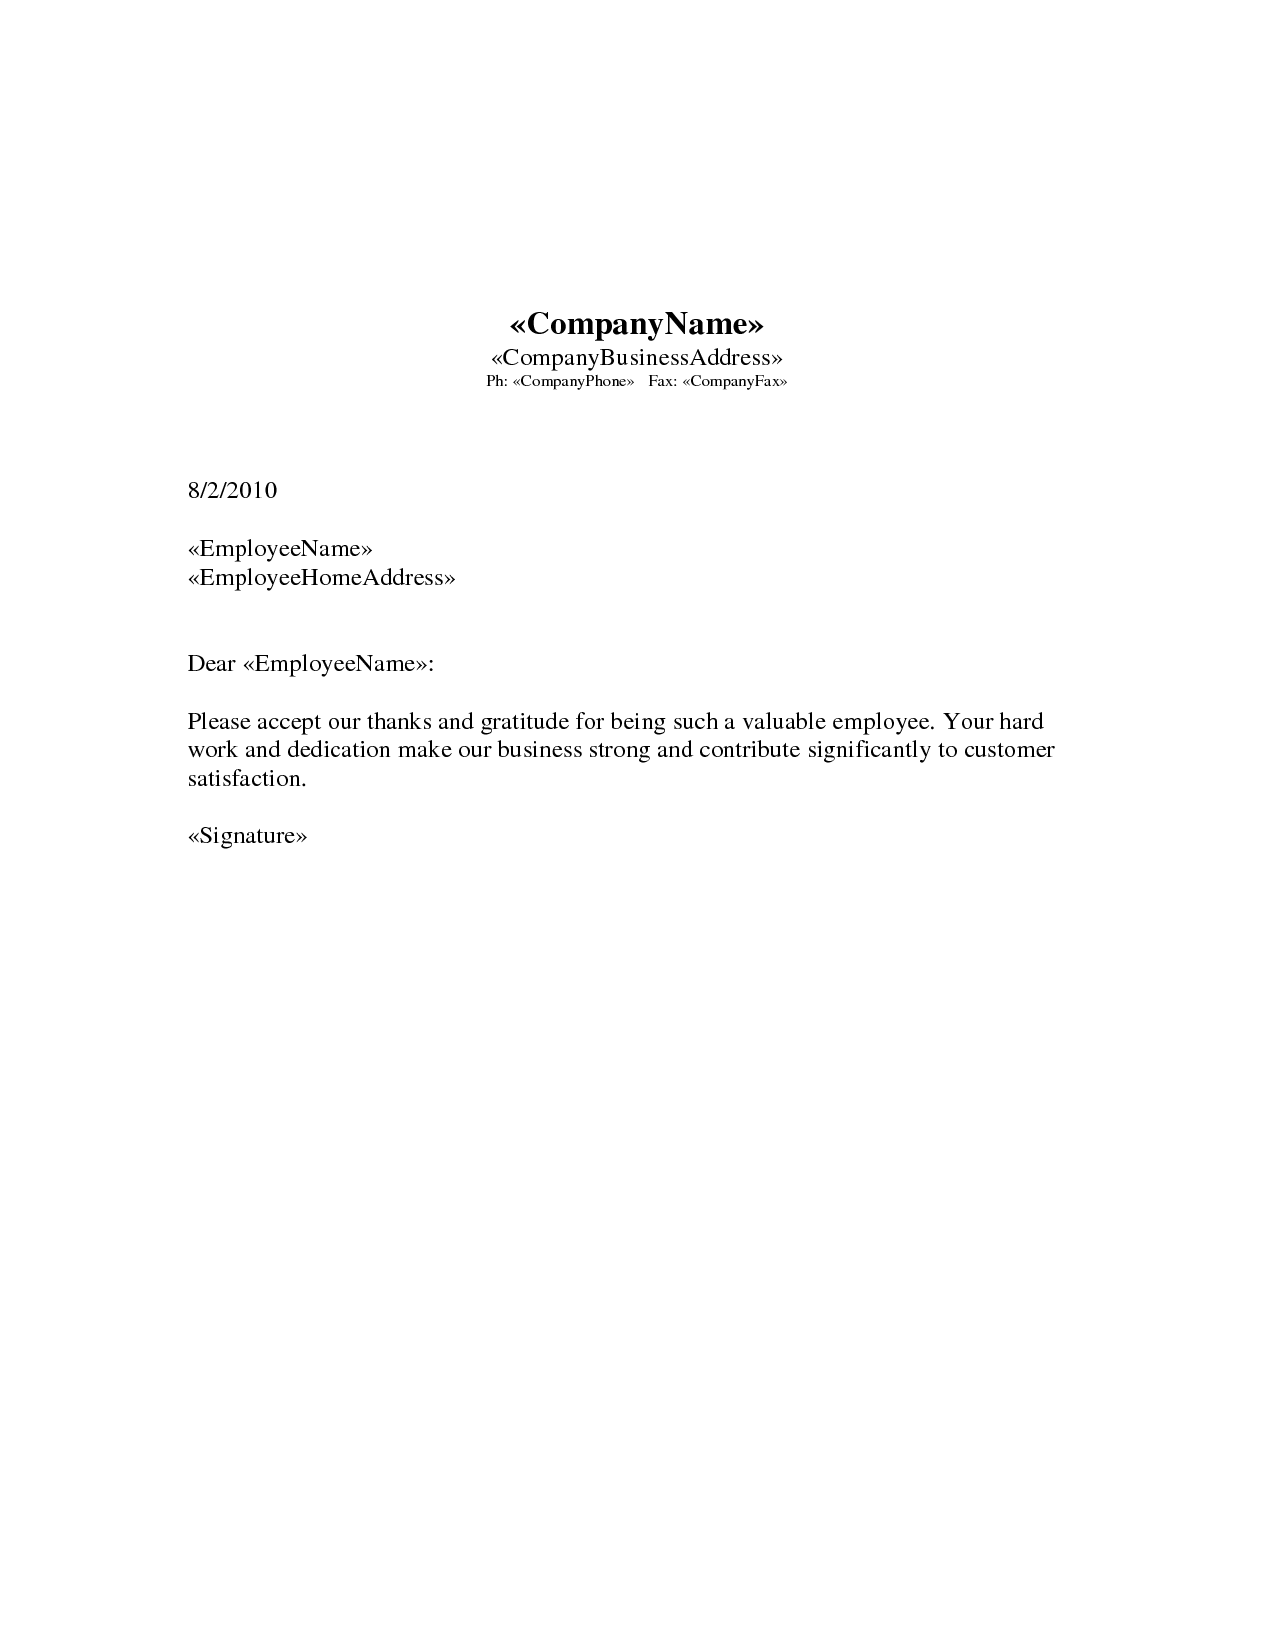 appreciation letter | images of employee appreciation letter doc ...